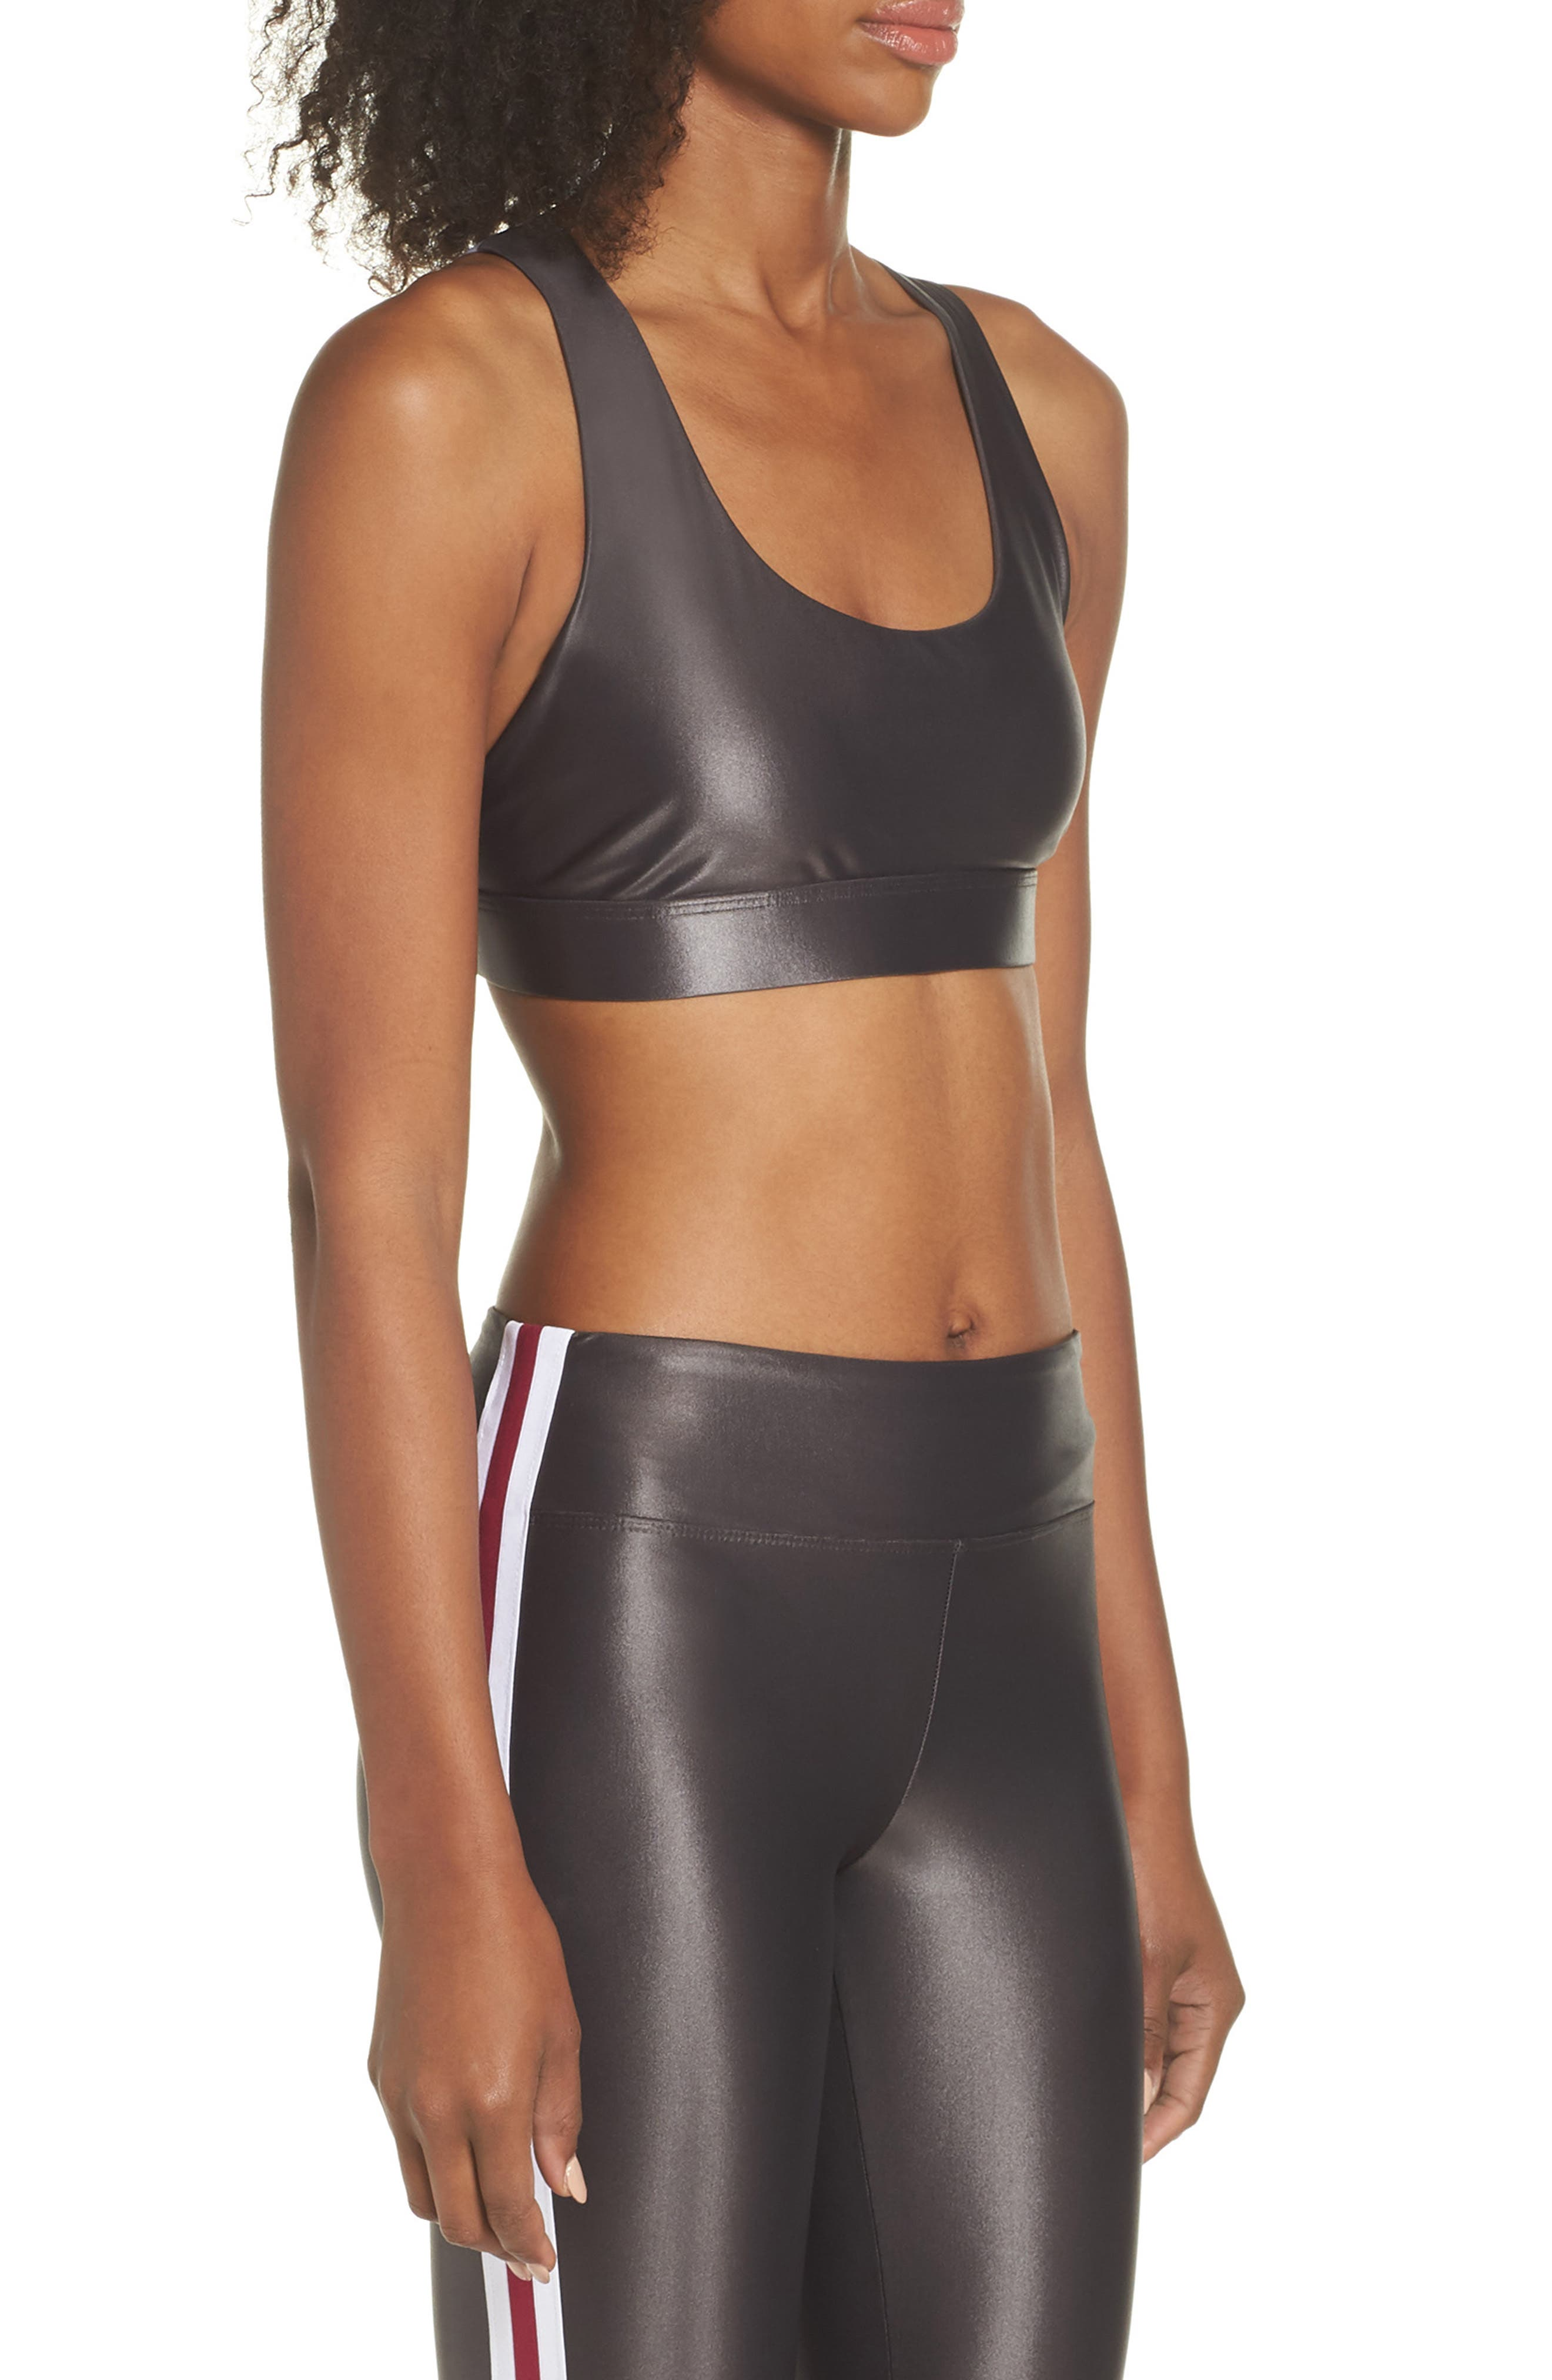 Fame Sports Bra,                             Alternate thumbnail 3, color,                             LEAD